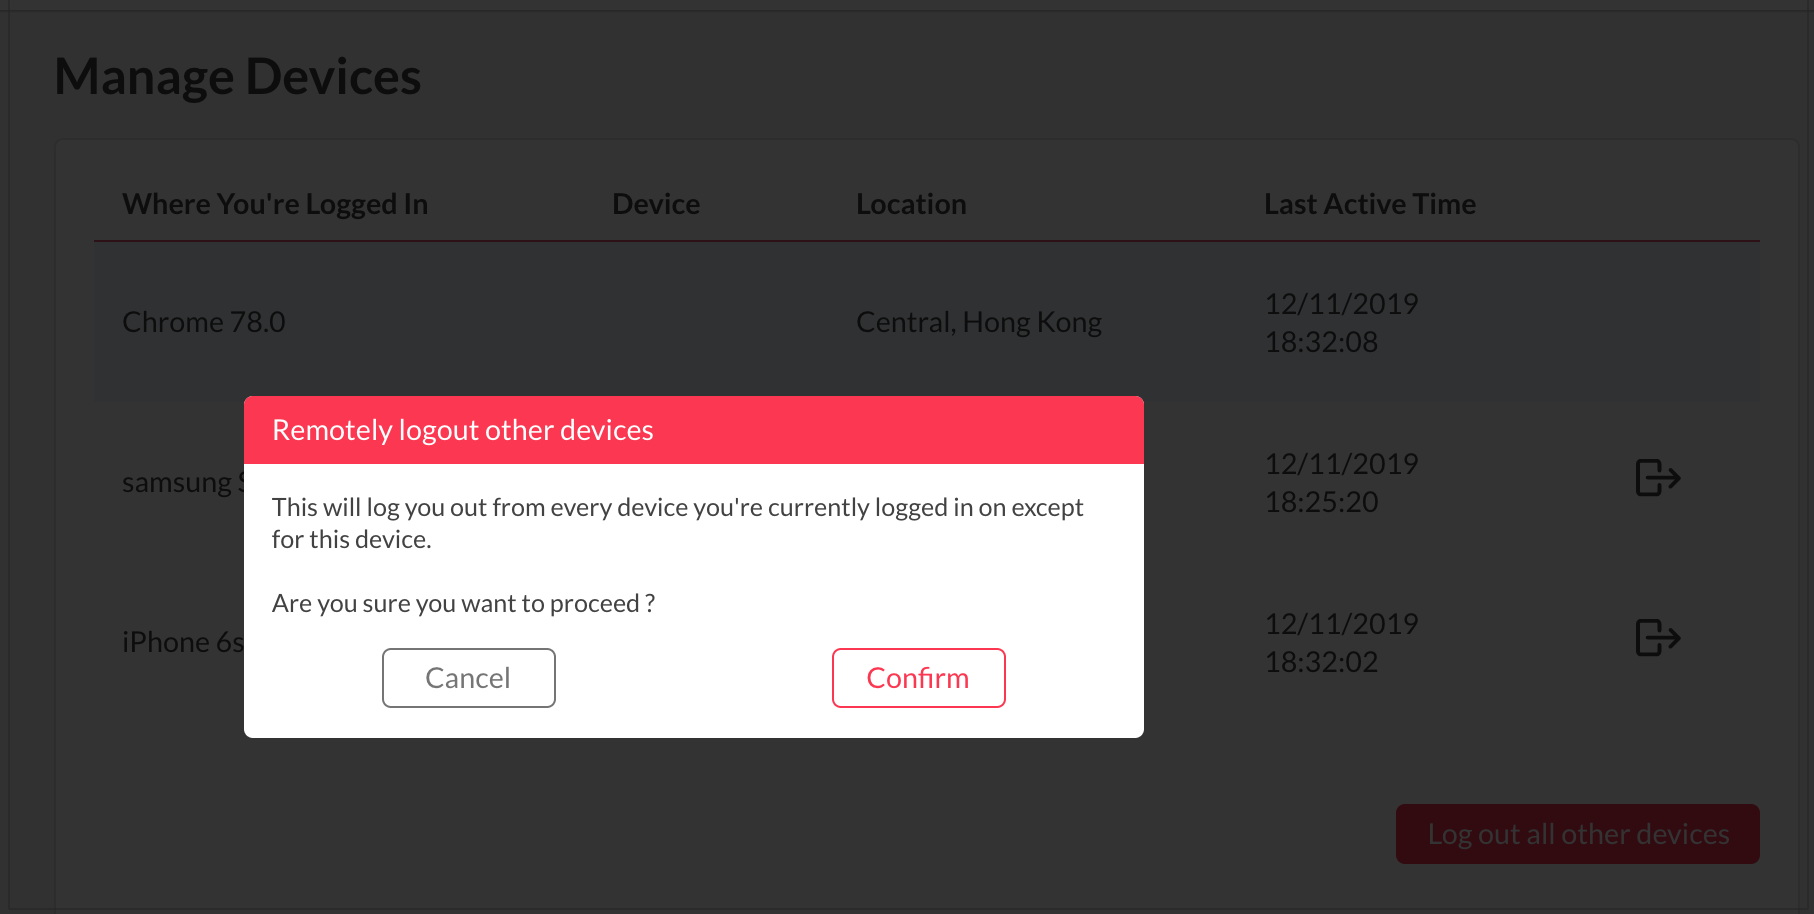 Logout All Other Devices